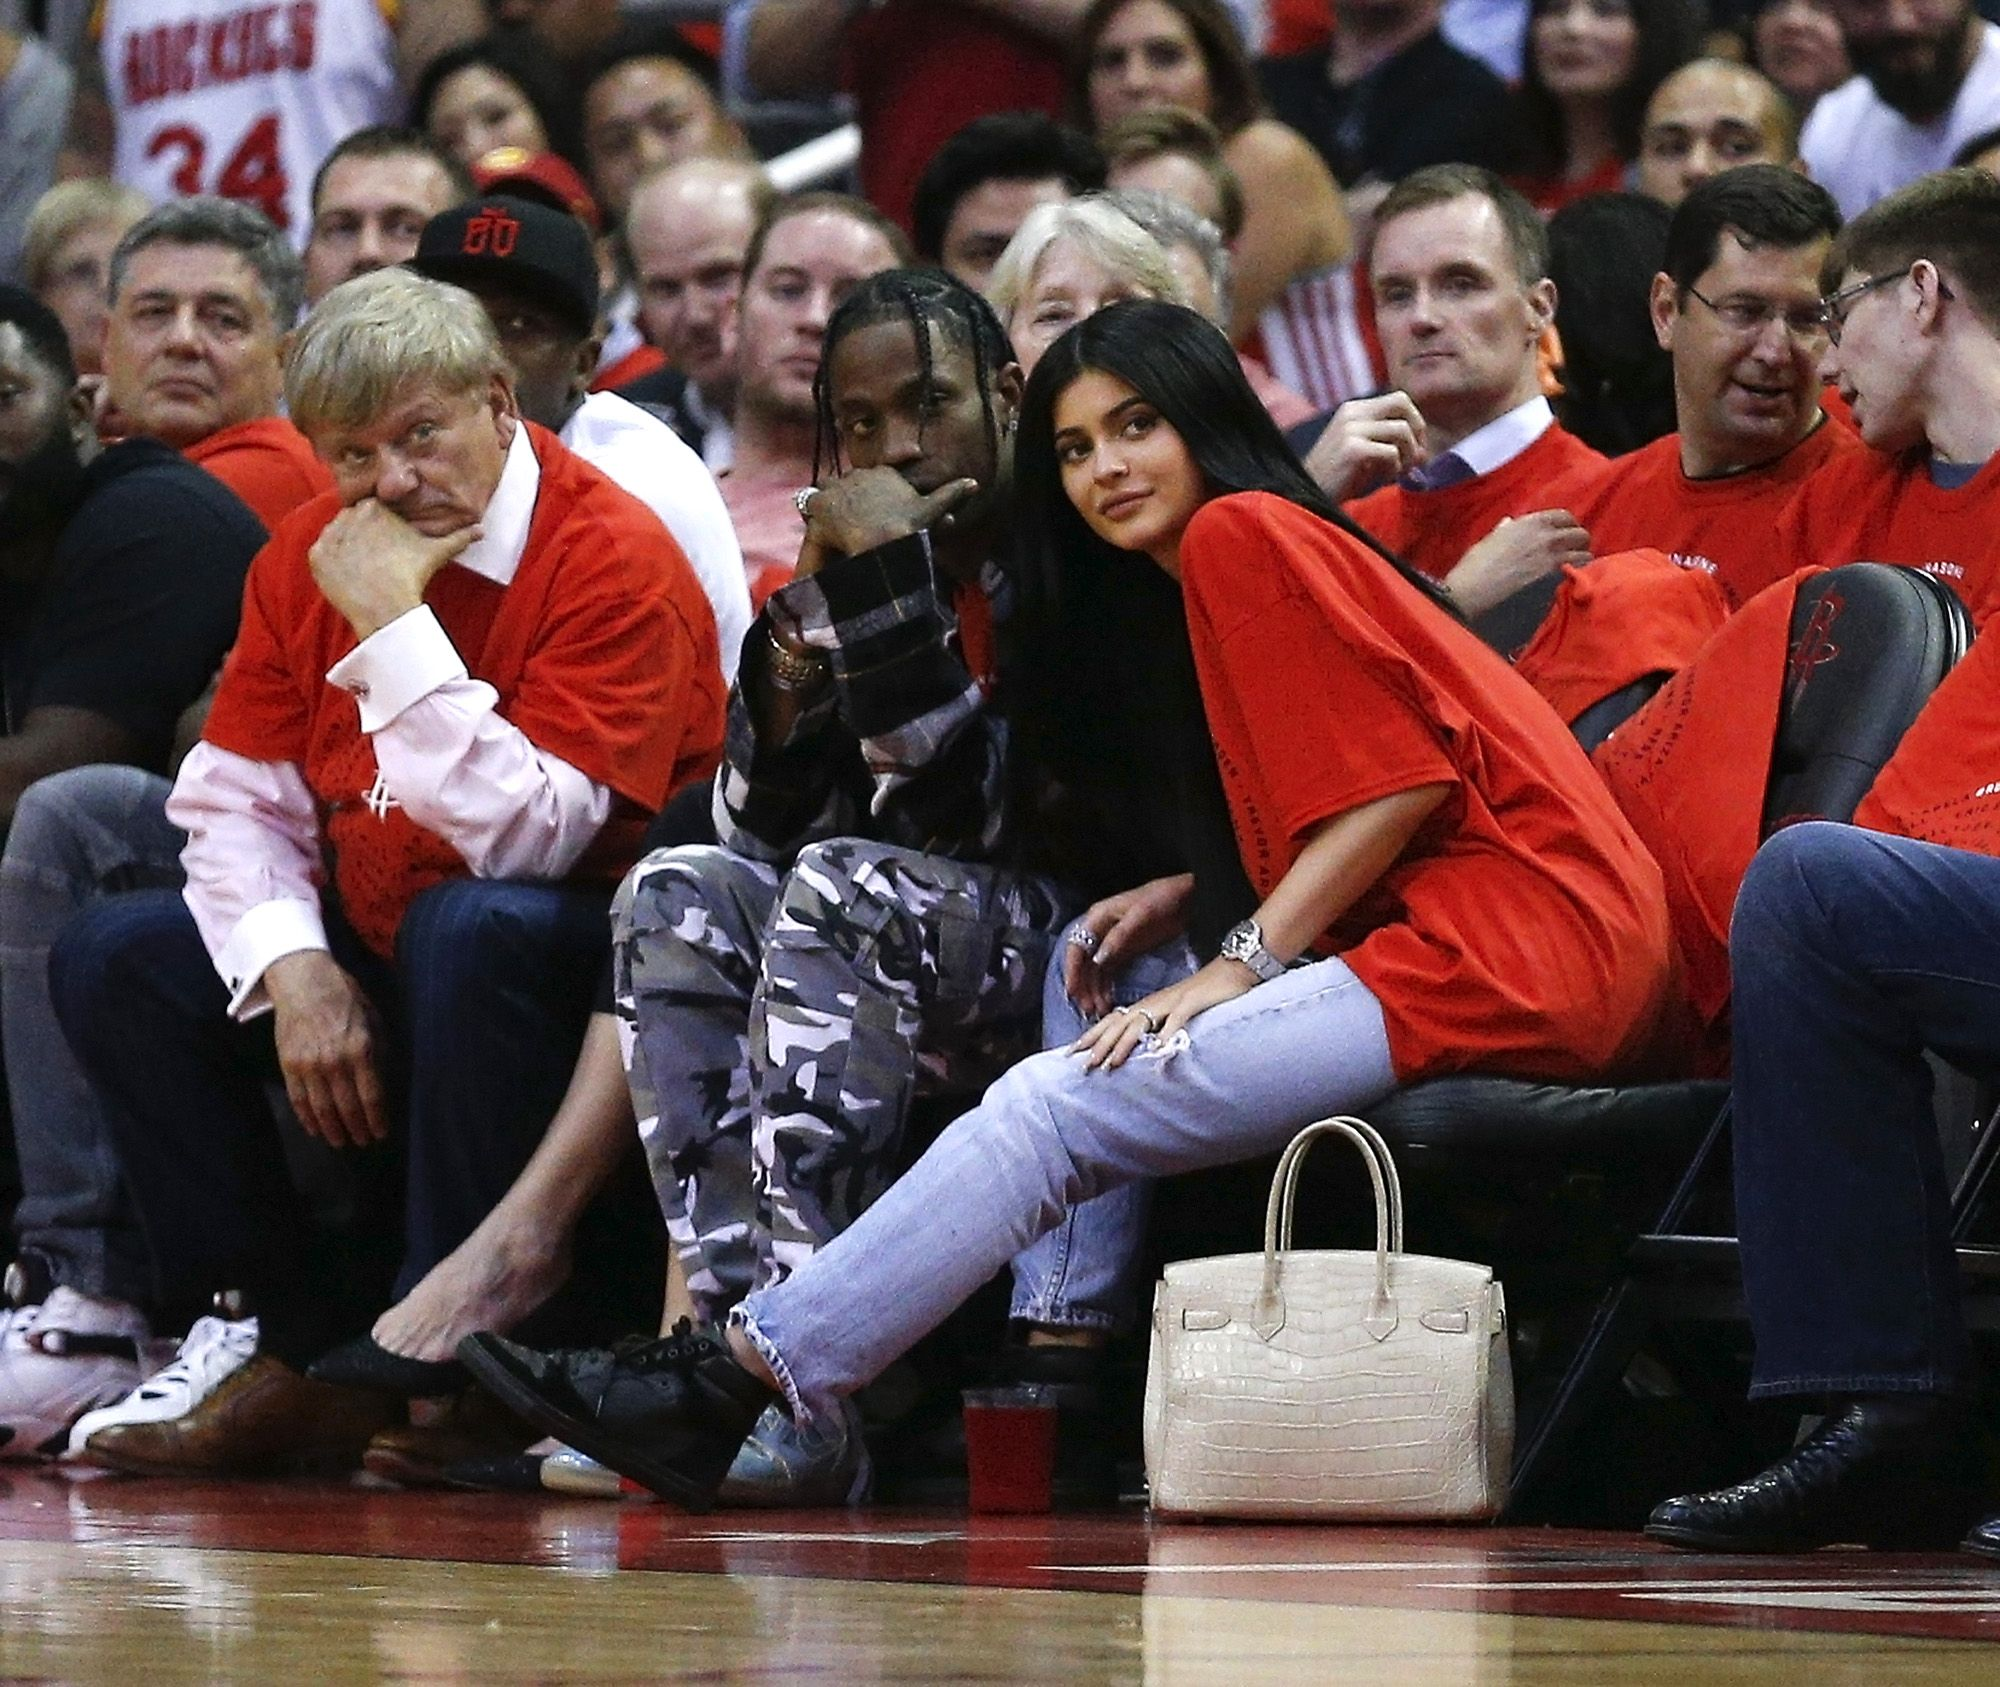 Celebrities At Basketball Games forecasting